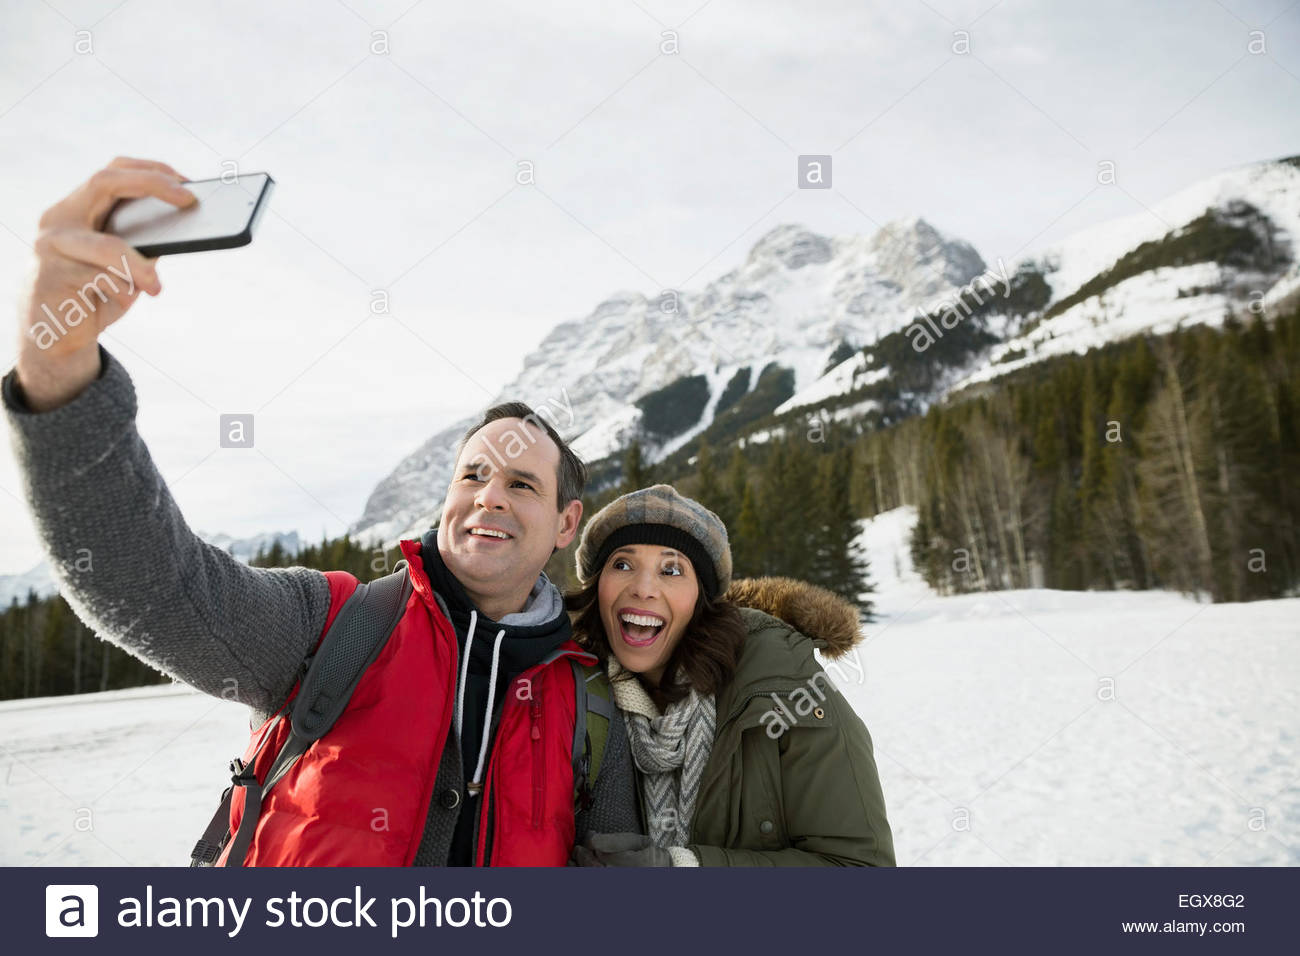 Couple taking selfie below snowy mountains - Stock Image